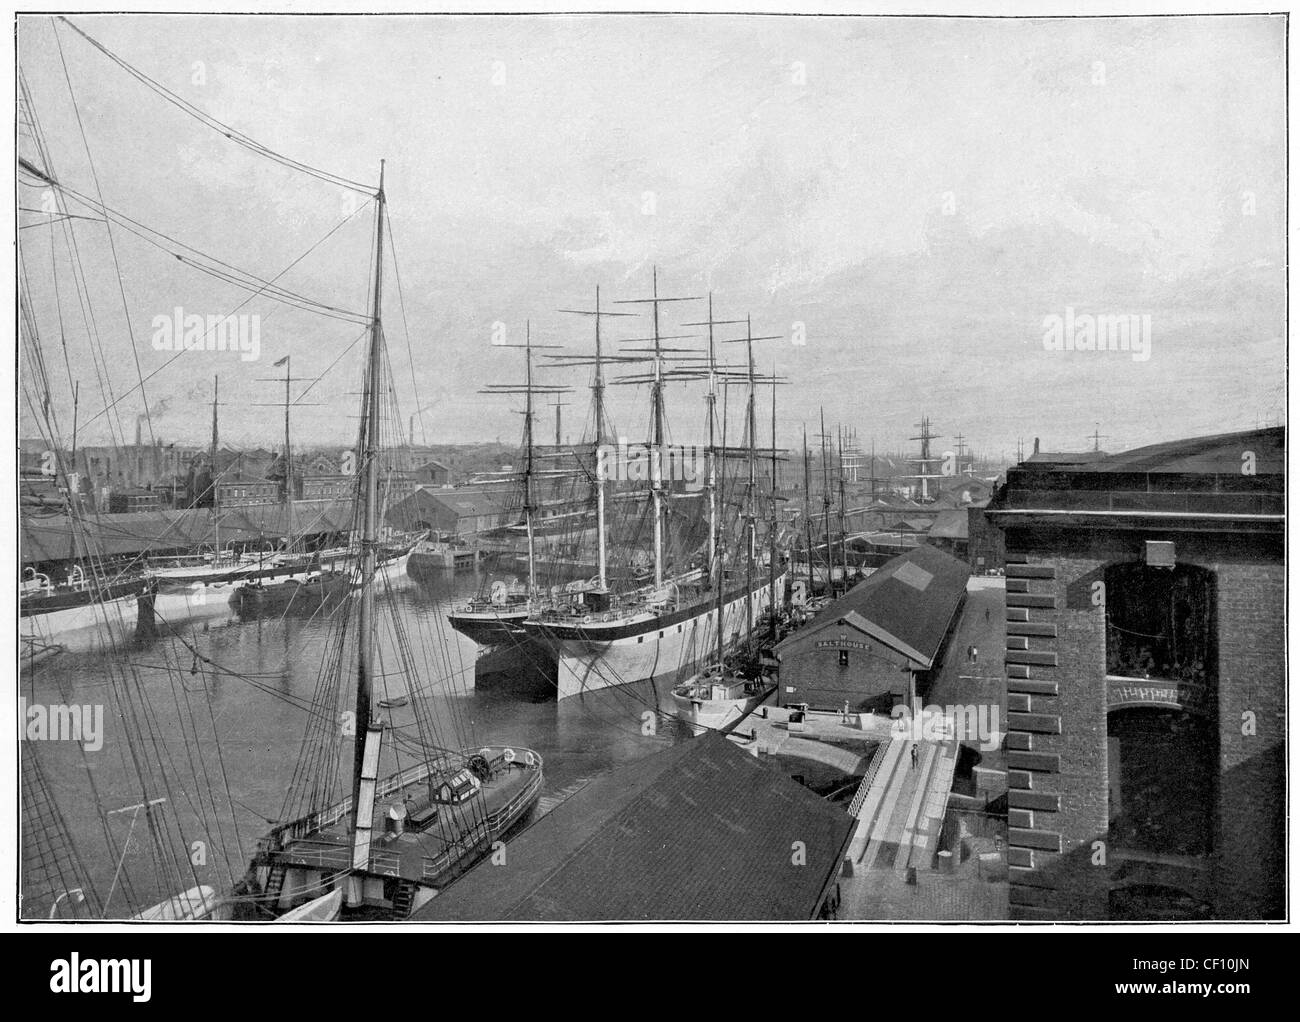 Liverpool docks at the end of the 19th Century - Stock Image